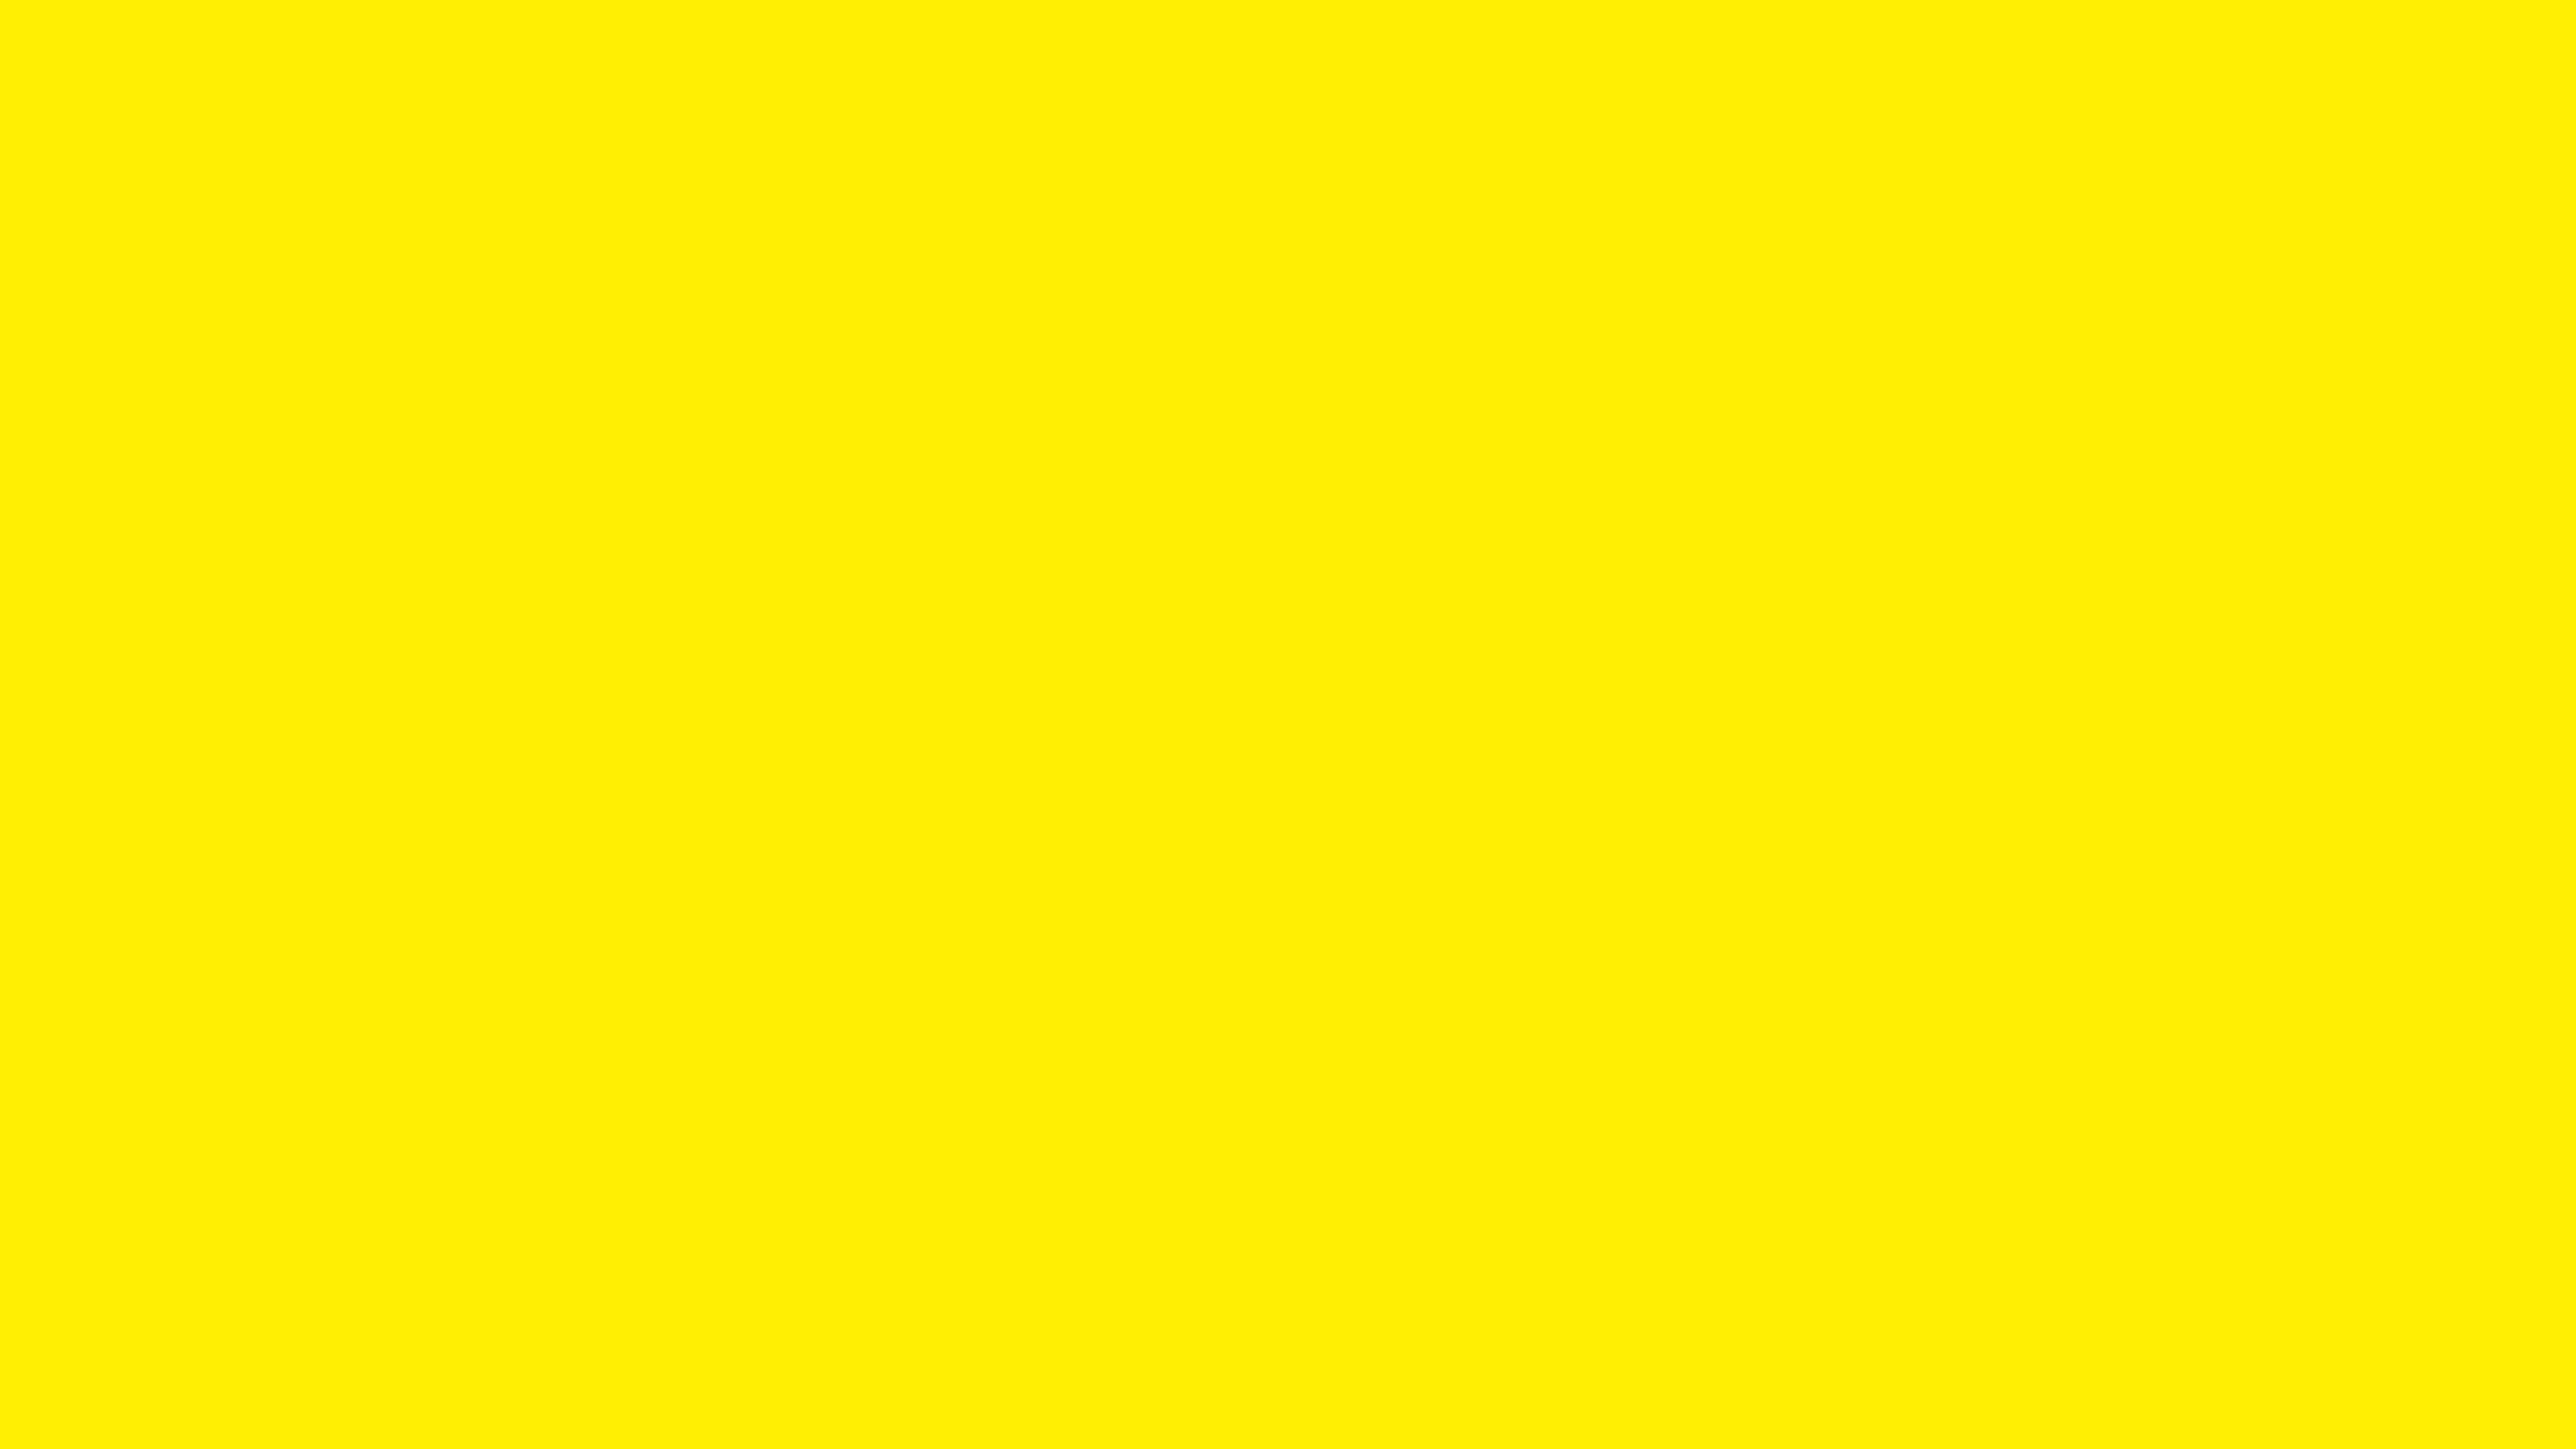 7680x4320 Yellow Process Solid Color Background